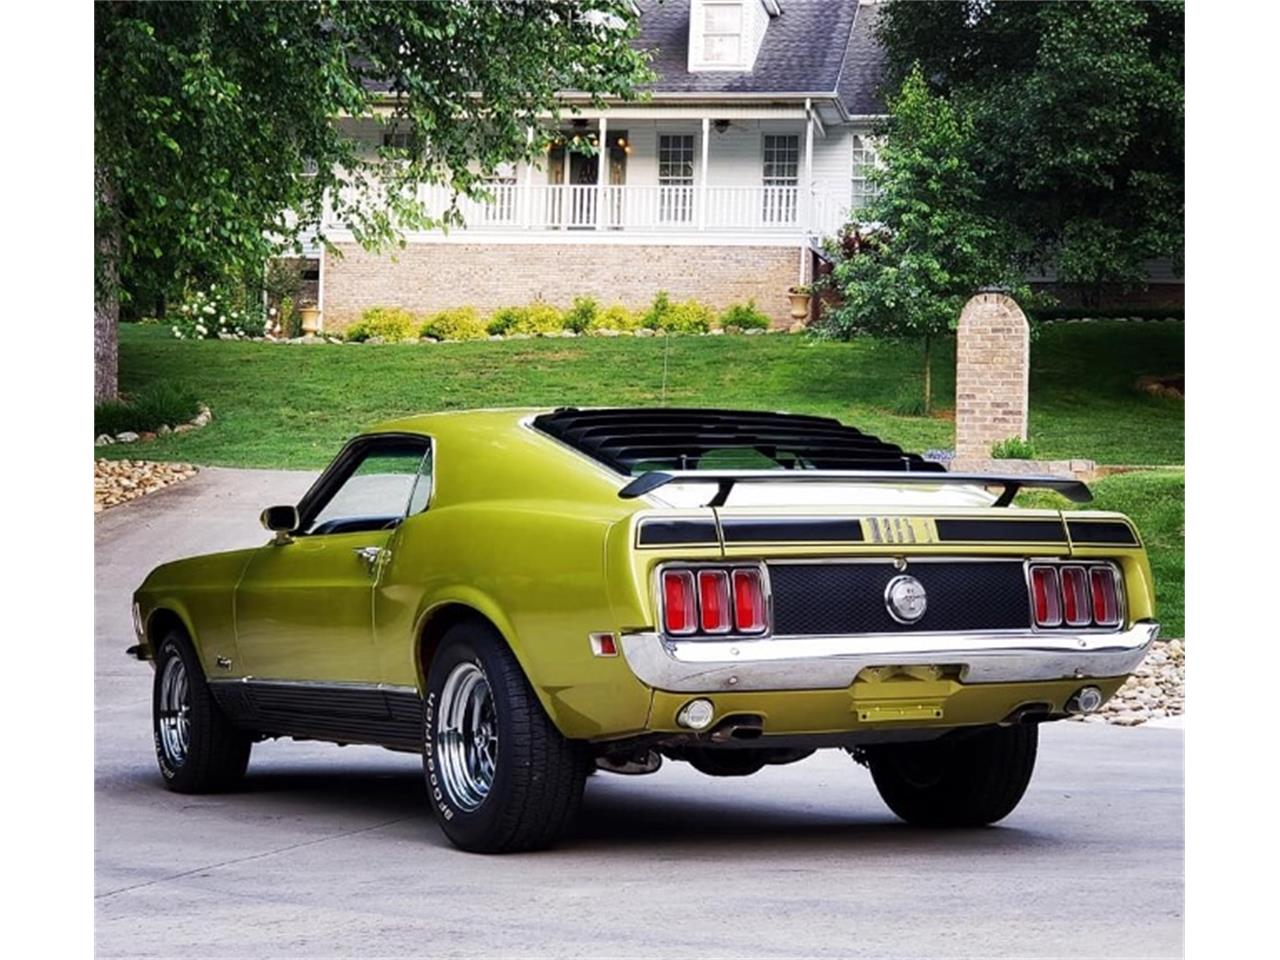 Large Picture of Classic '70 Mustang located in Mundelein Illinois - $46,500.00 Offered by North Shore Classics - QIDR